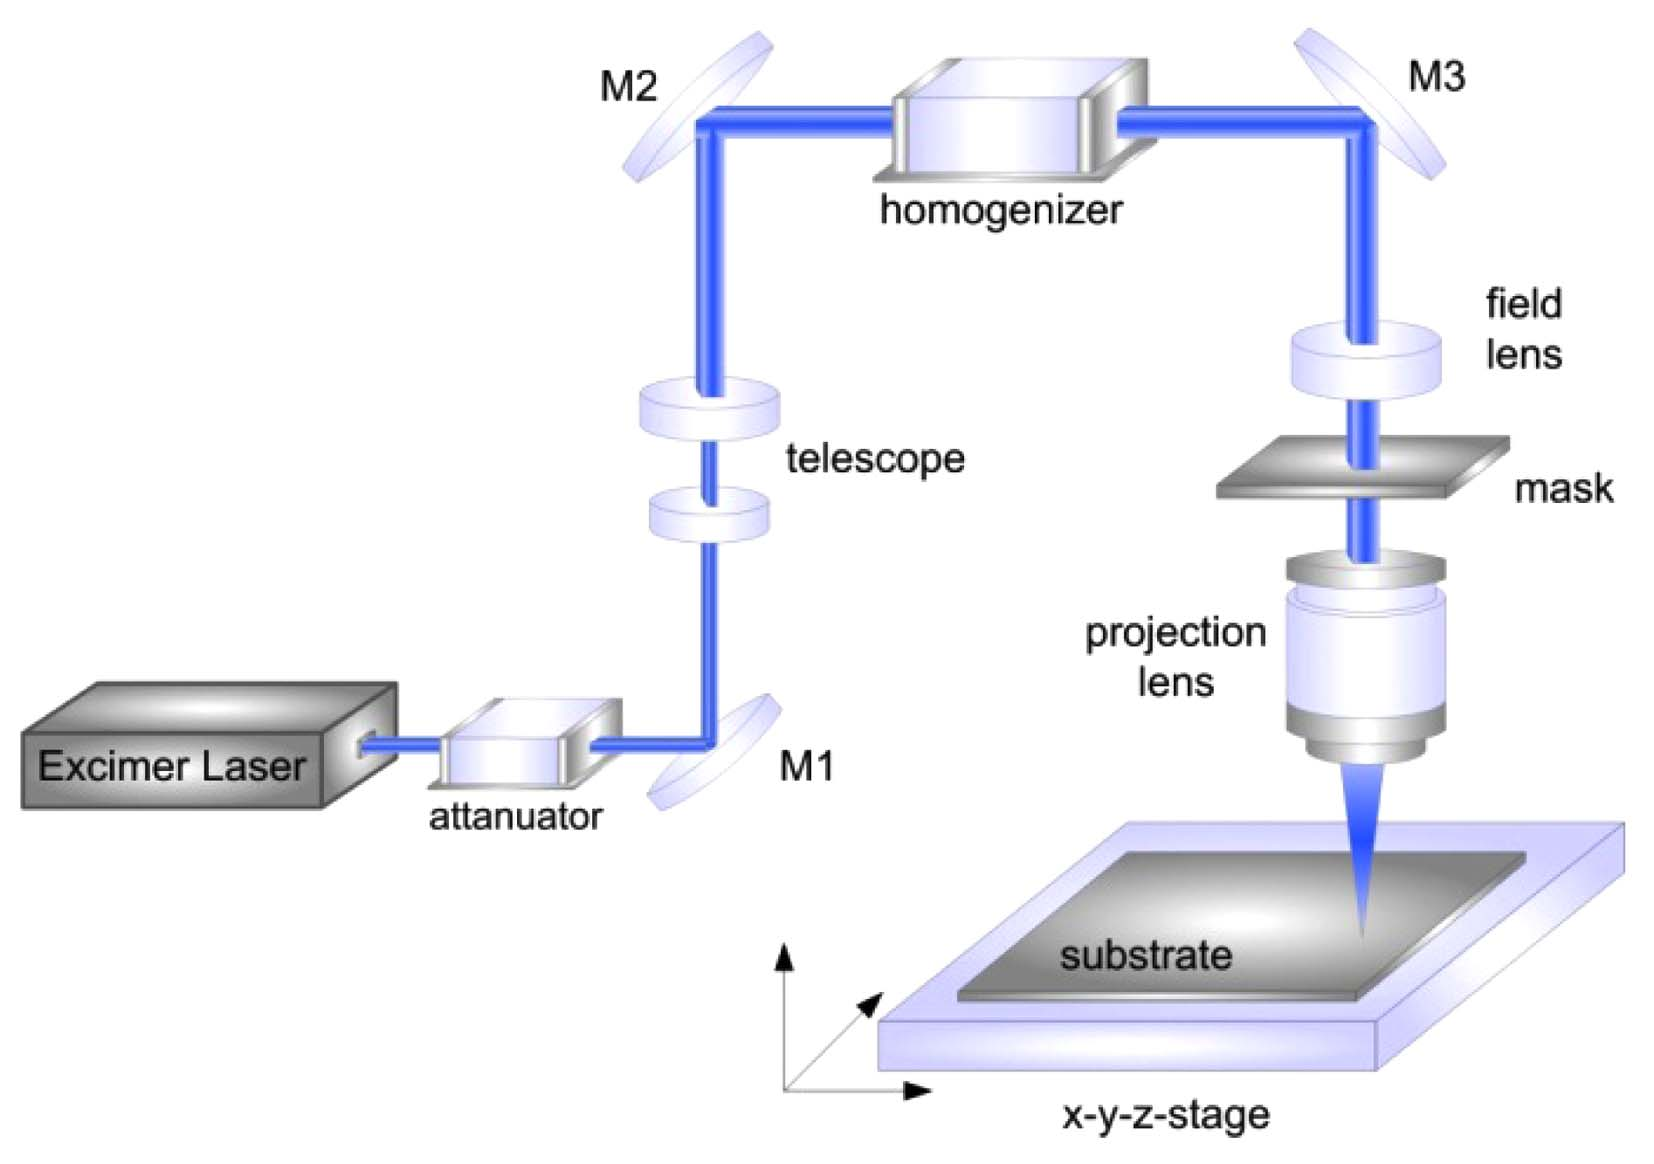 Laser Drilling of High-Density Through Glass Vias (TGVs) for 2.5D and 3D Packaging 55 Fig. 2. Sketch of excimer laser mask projection setup for parallel drilling through vias in thin glass.